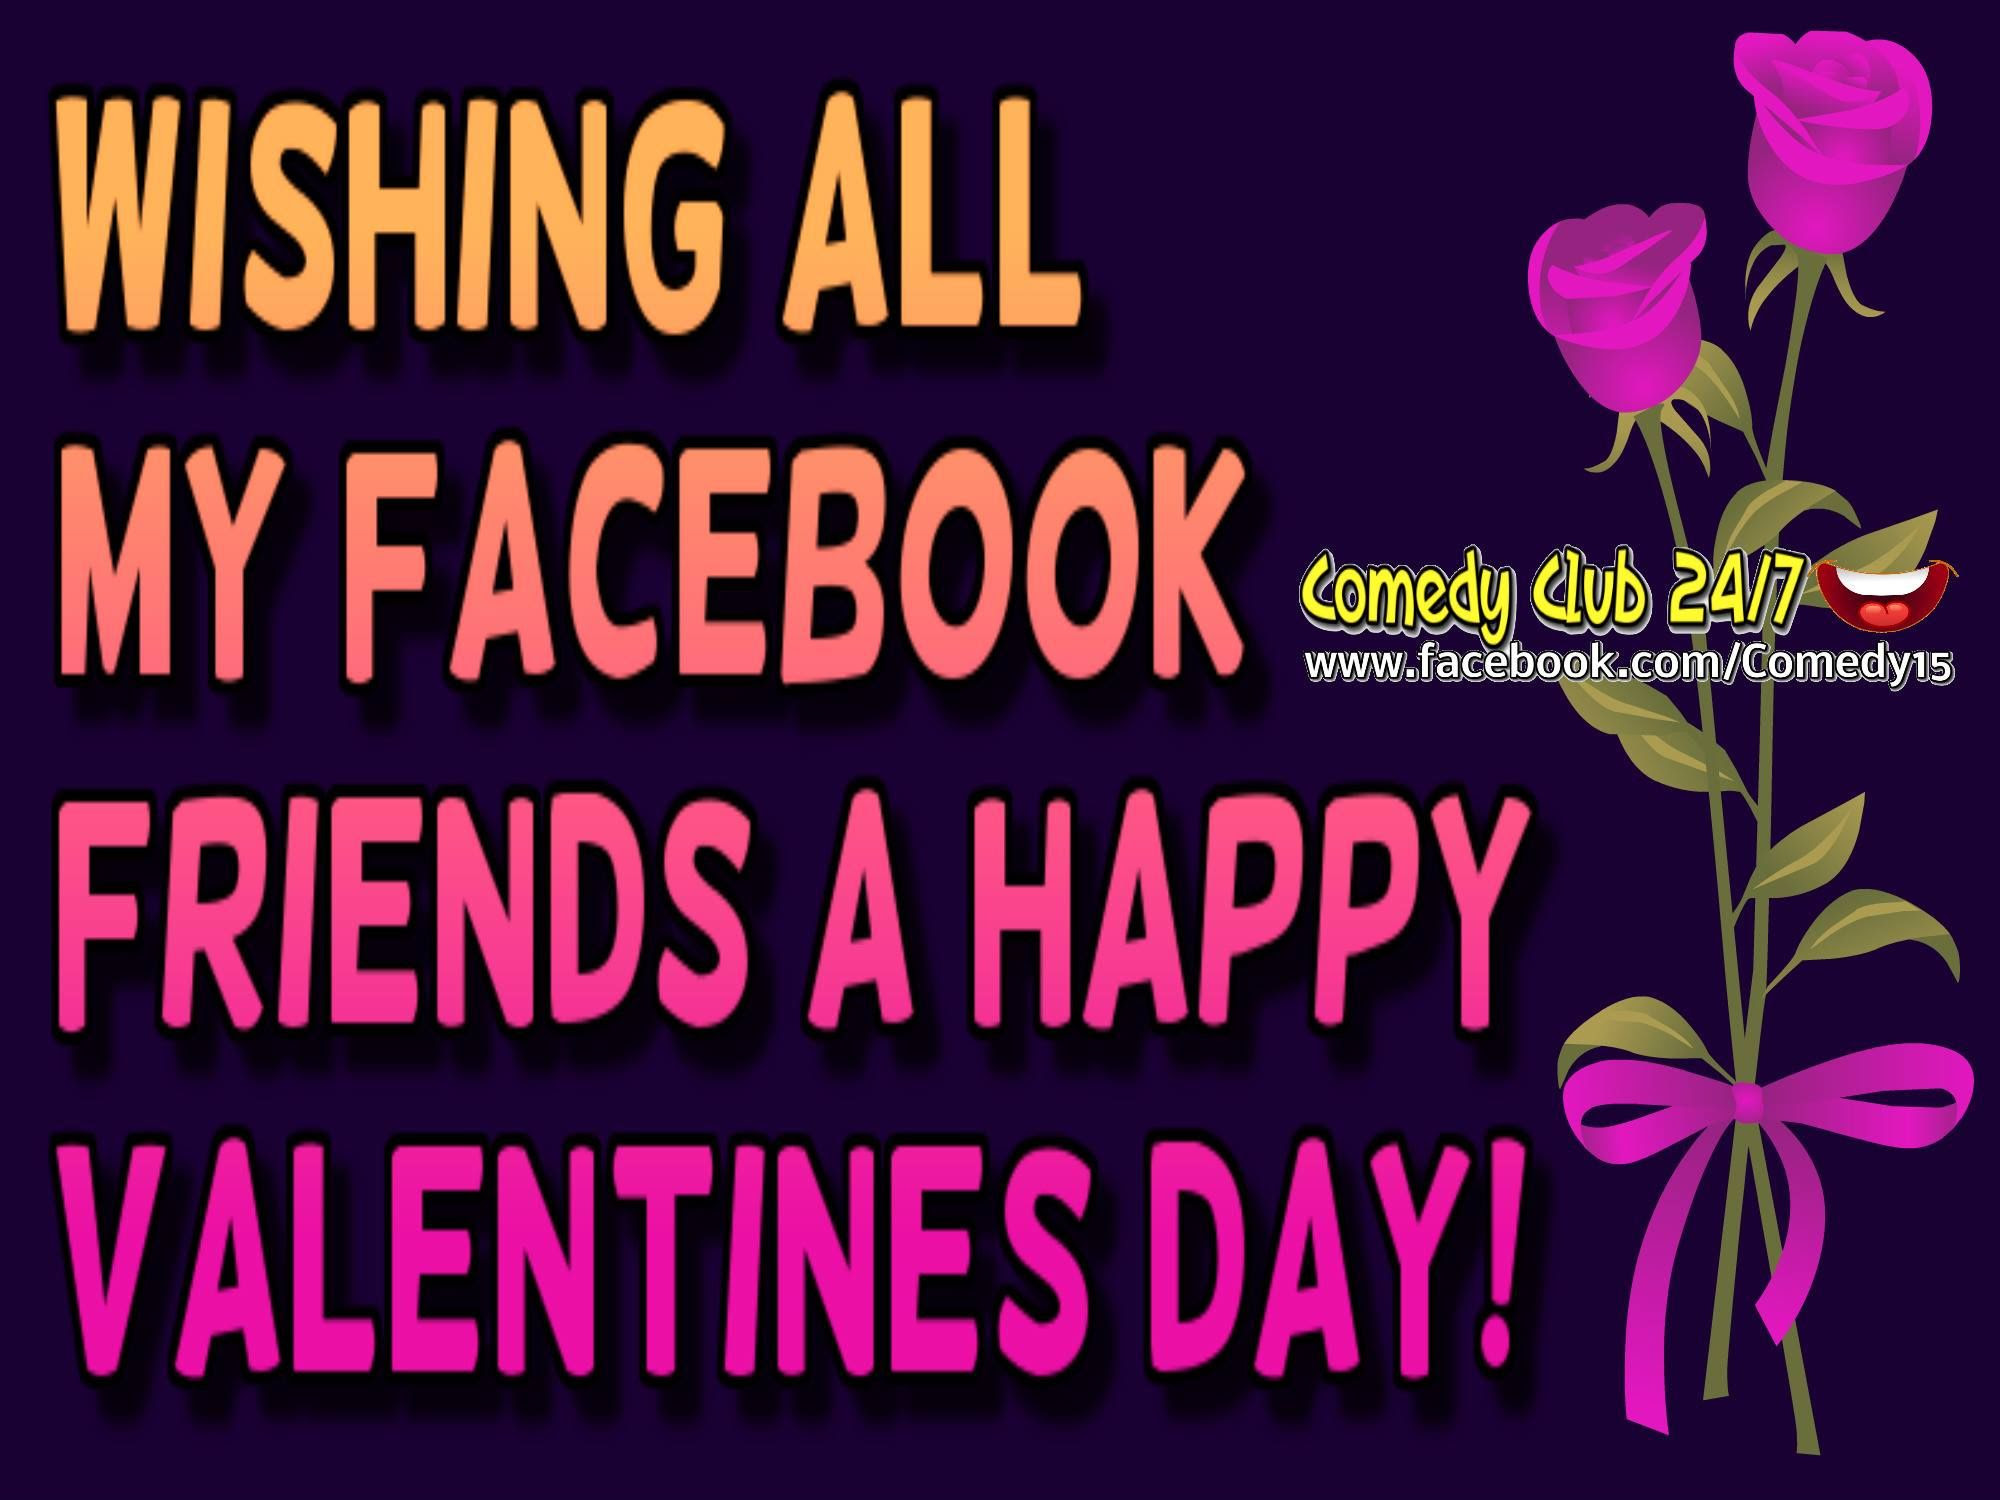 Wishing All My Facebook Friends A Happy Valentines Day Quote